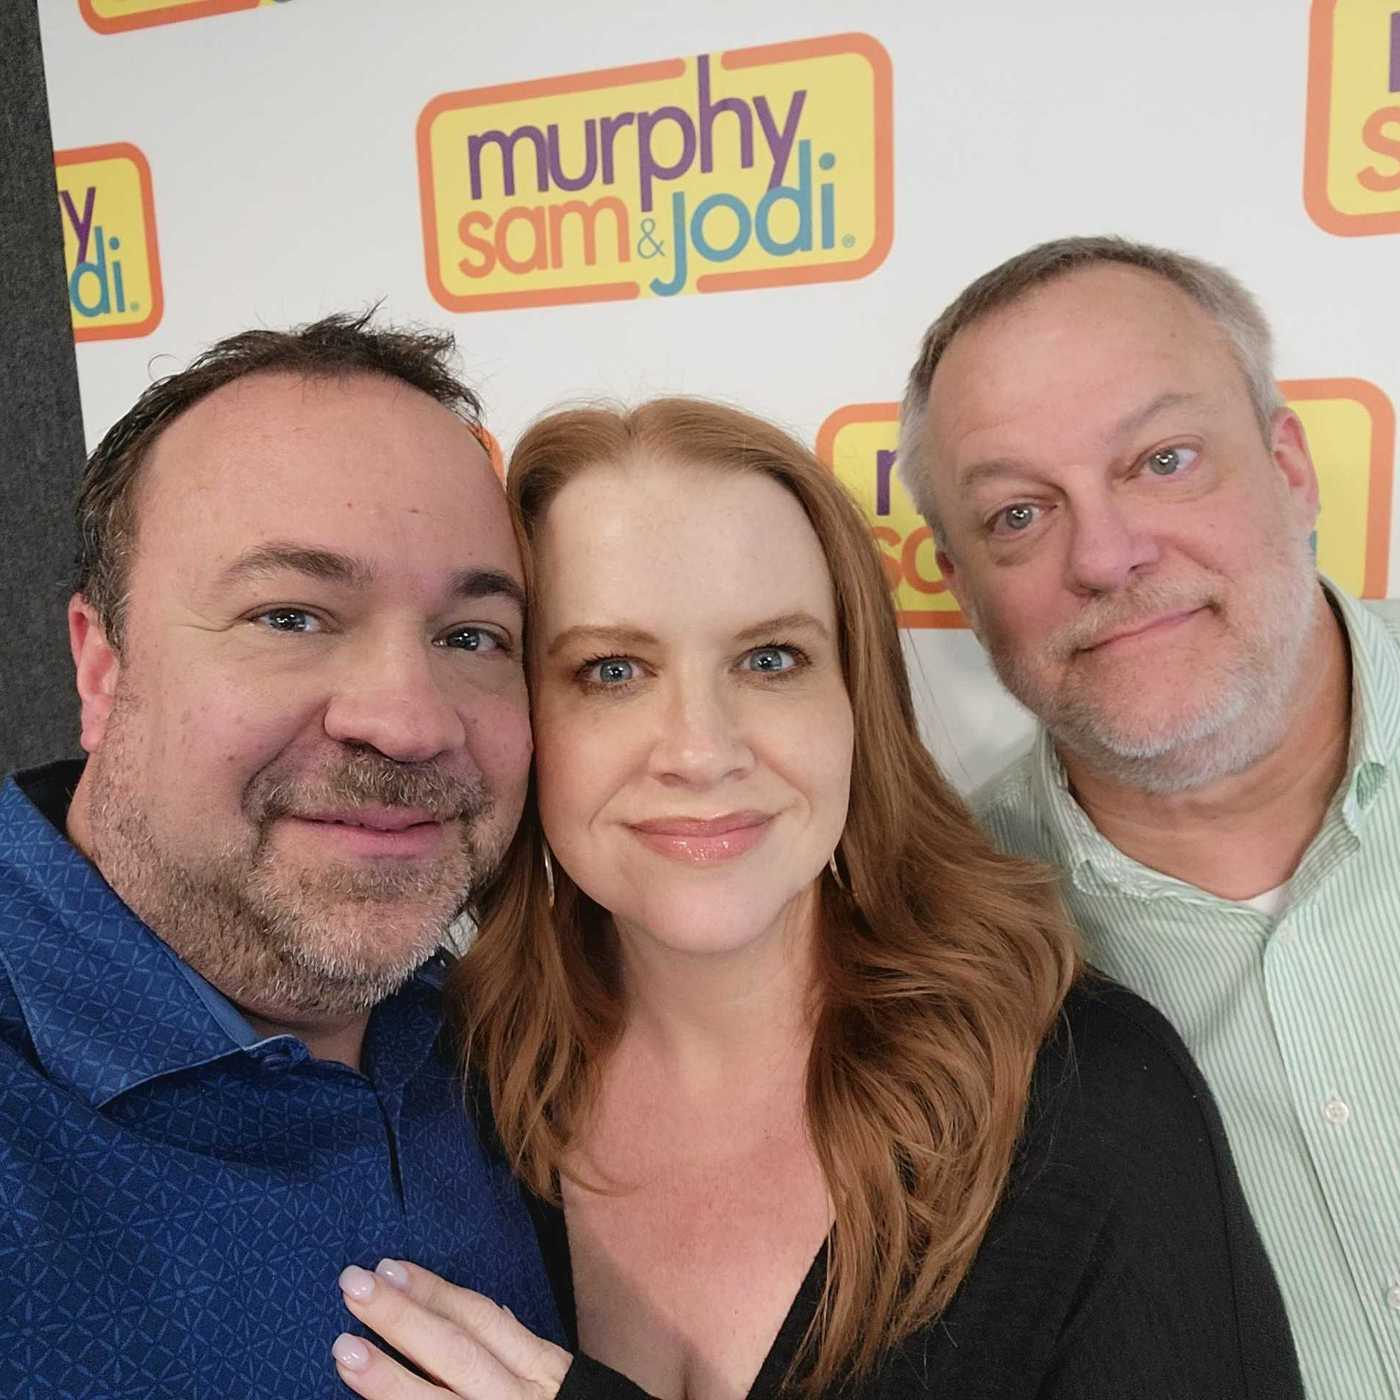 ICYMI After The Show PODCAST: Murphy tells the story (in detail) of WHY he stopped drinking